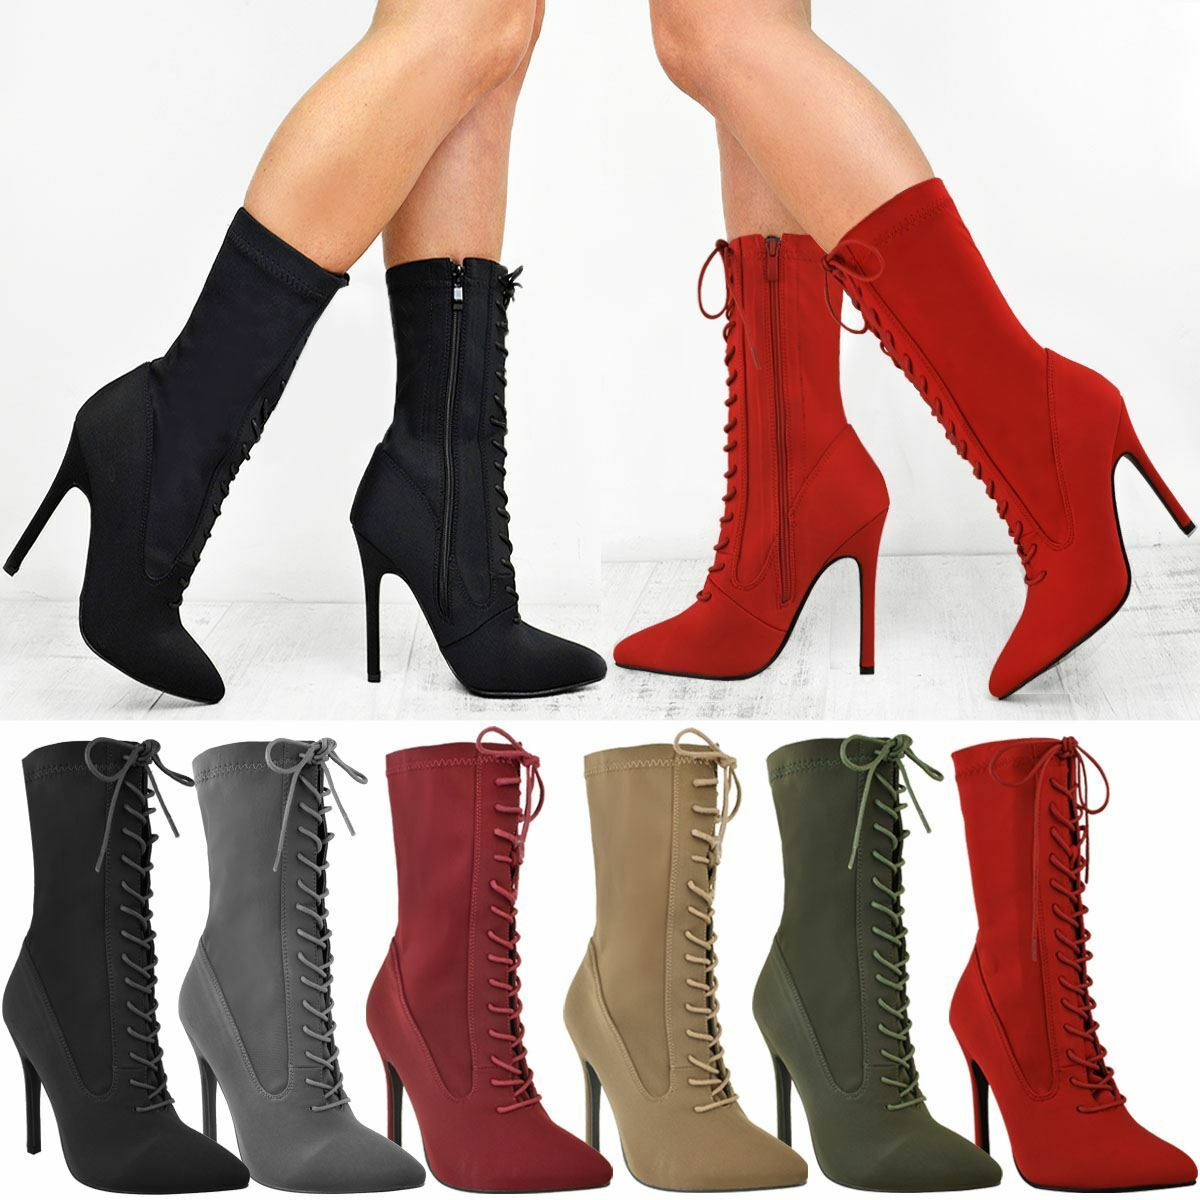 Womens Ladies Lace Up High Heel Stiletto Stretchy Lycra Ankle Boots shoes Size